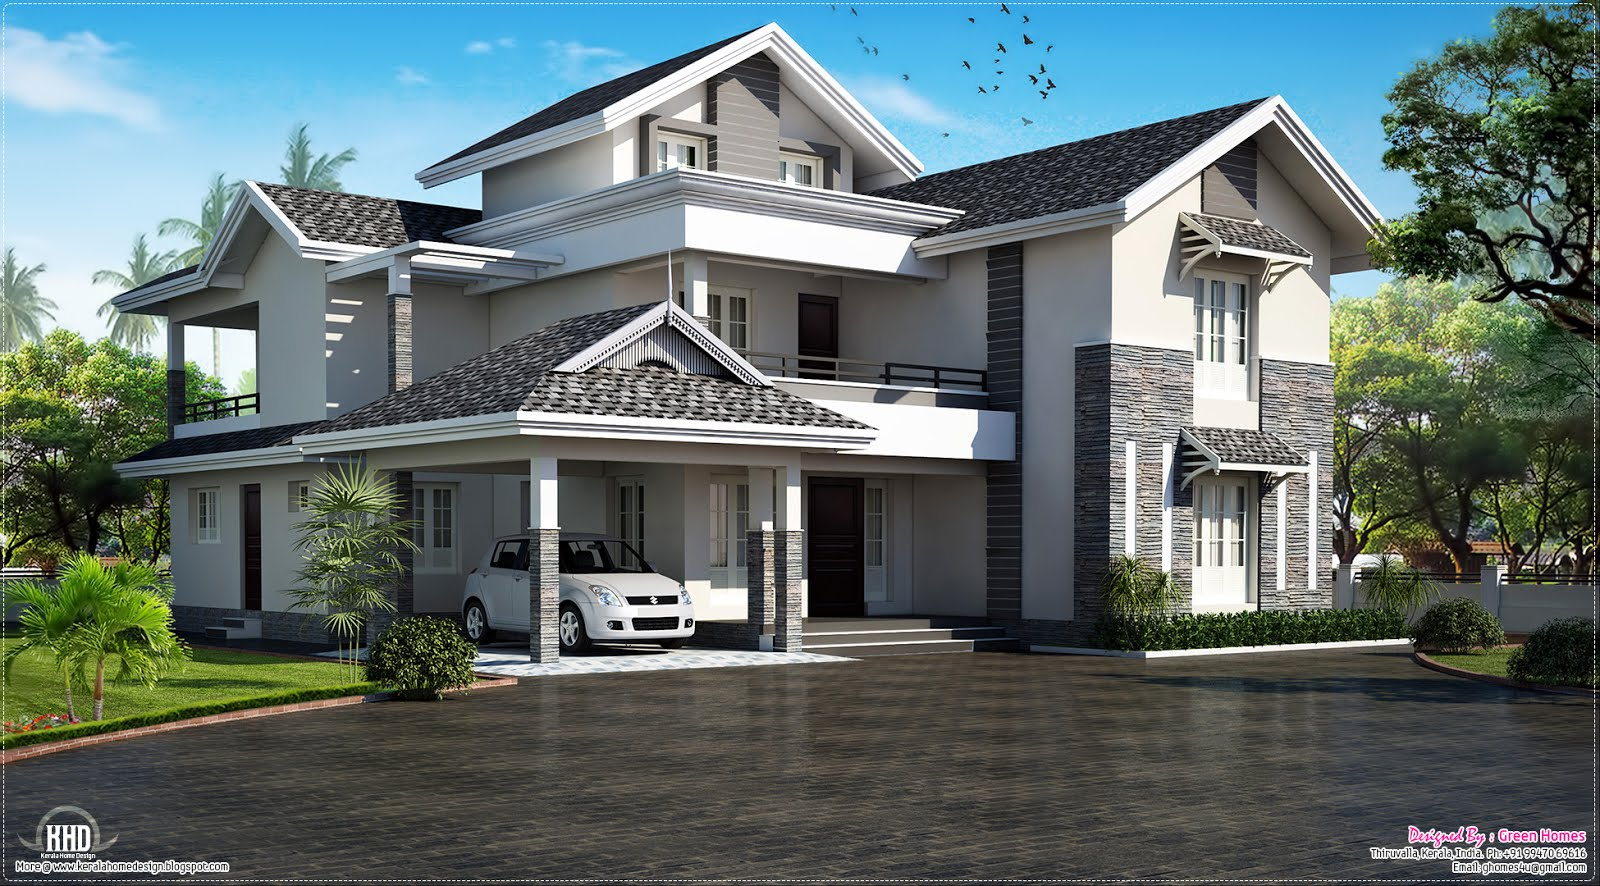 Modern sloping roof house villa design kerala home Home design